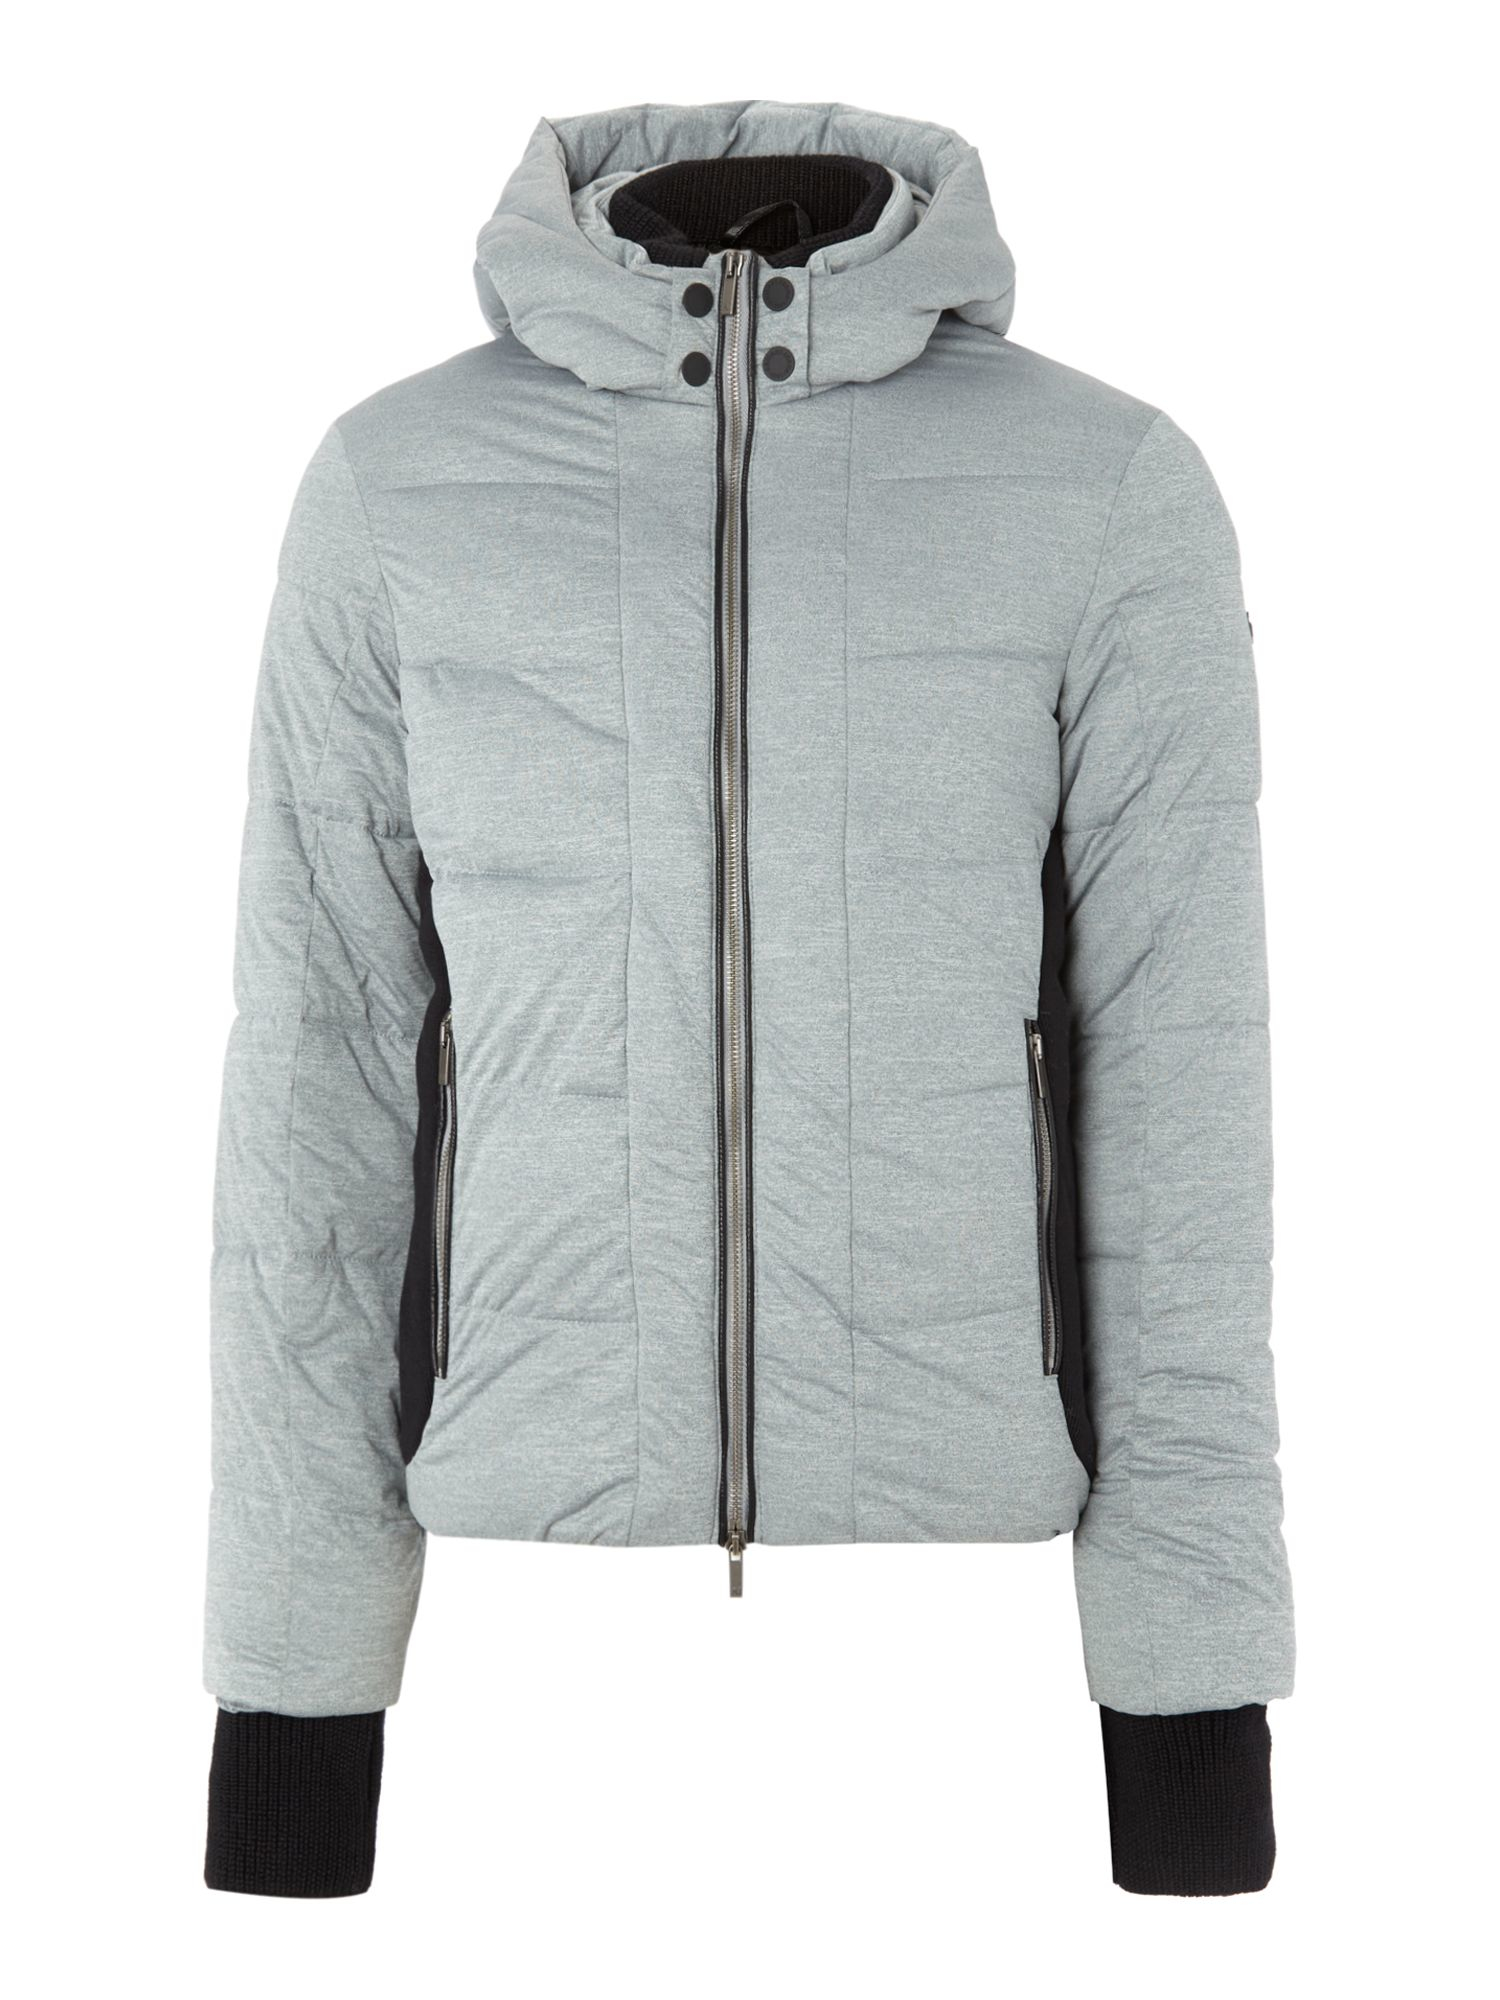 6d7cbd688 Armani jeans Casual Showerproof Full Zip Quilted Jacket in Gray for ...